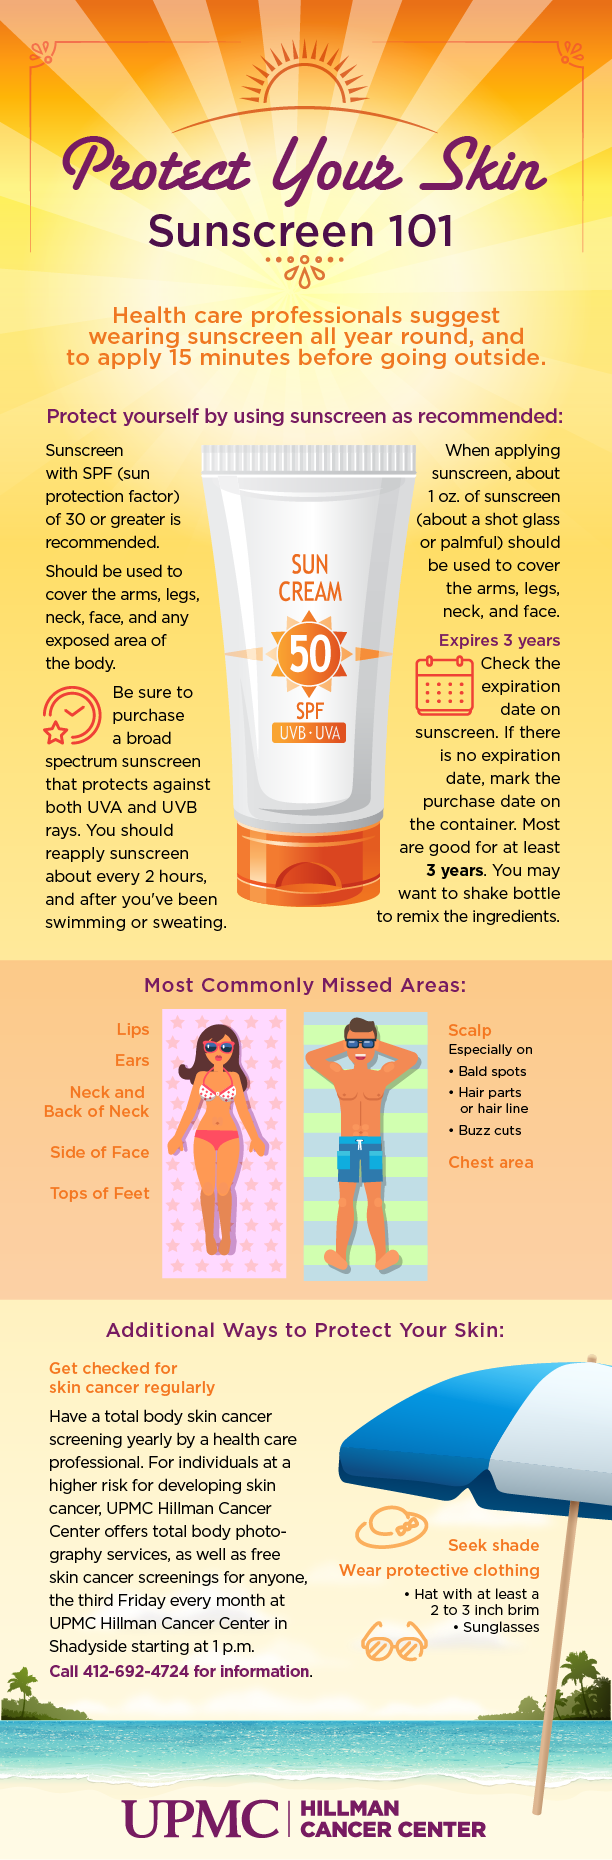 Learn essential facts about sunscreen